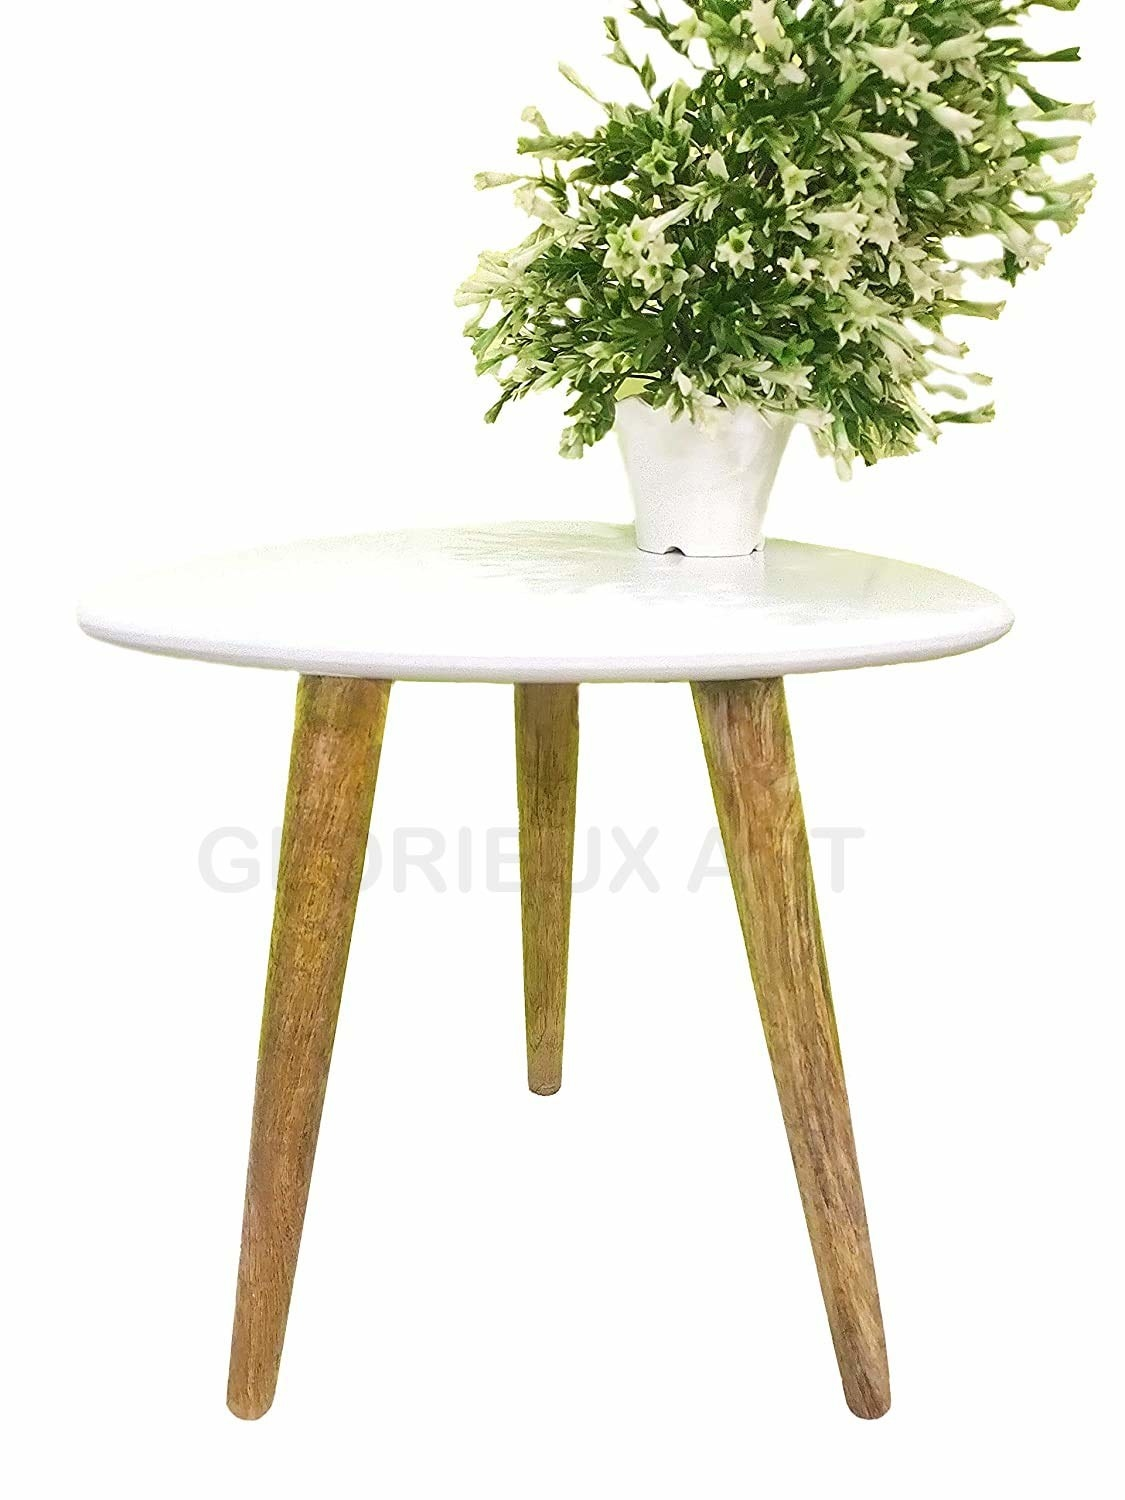 A tripod side table with wooden legs and a white top